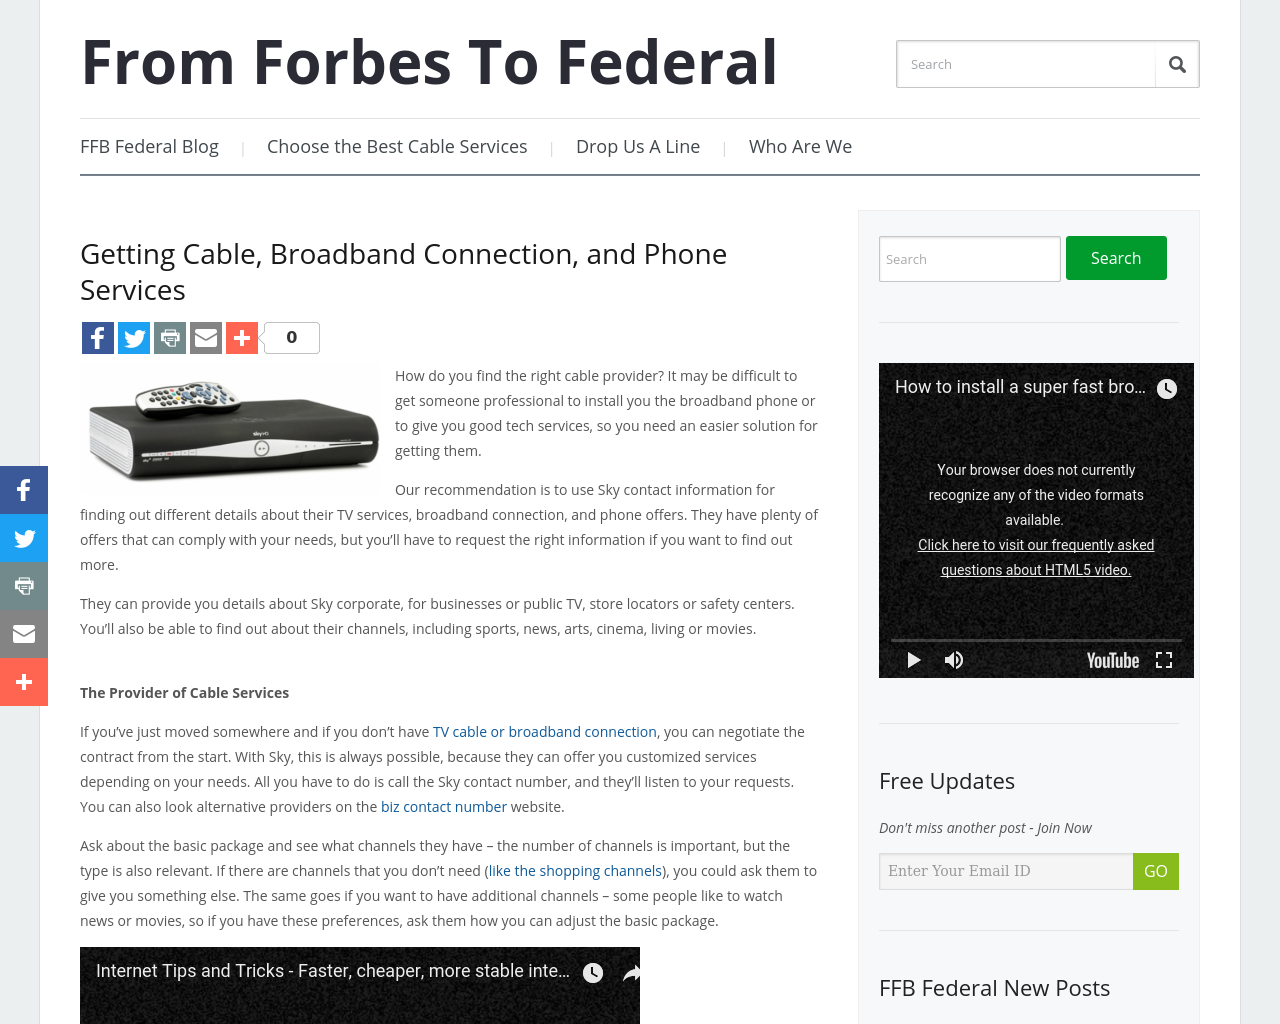 From-Forbes-To-Federal-Advertising-Reviews-Pricing